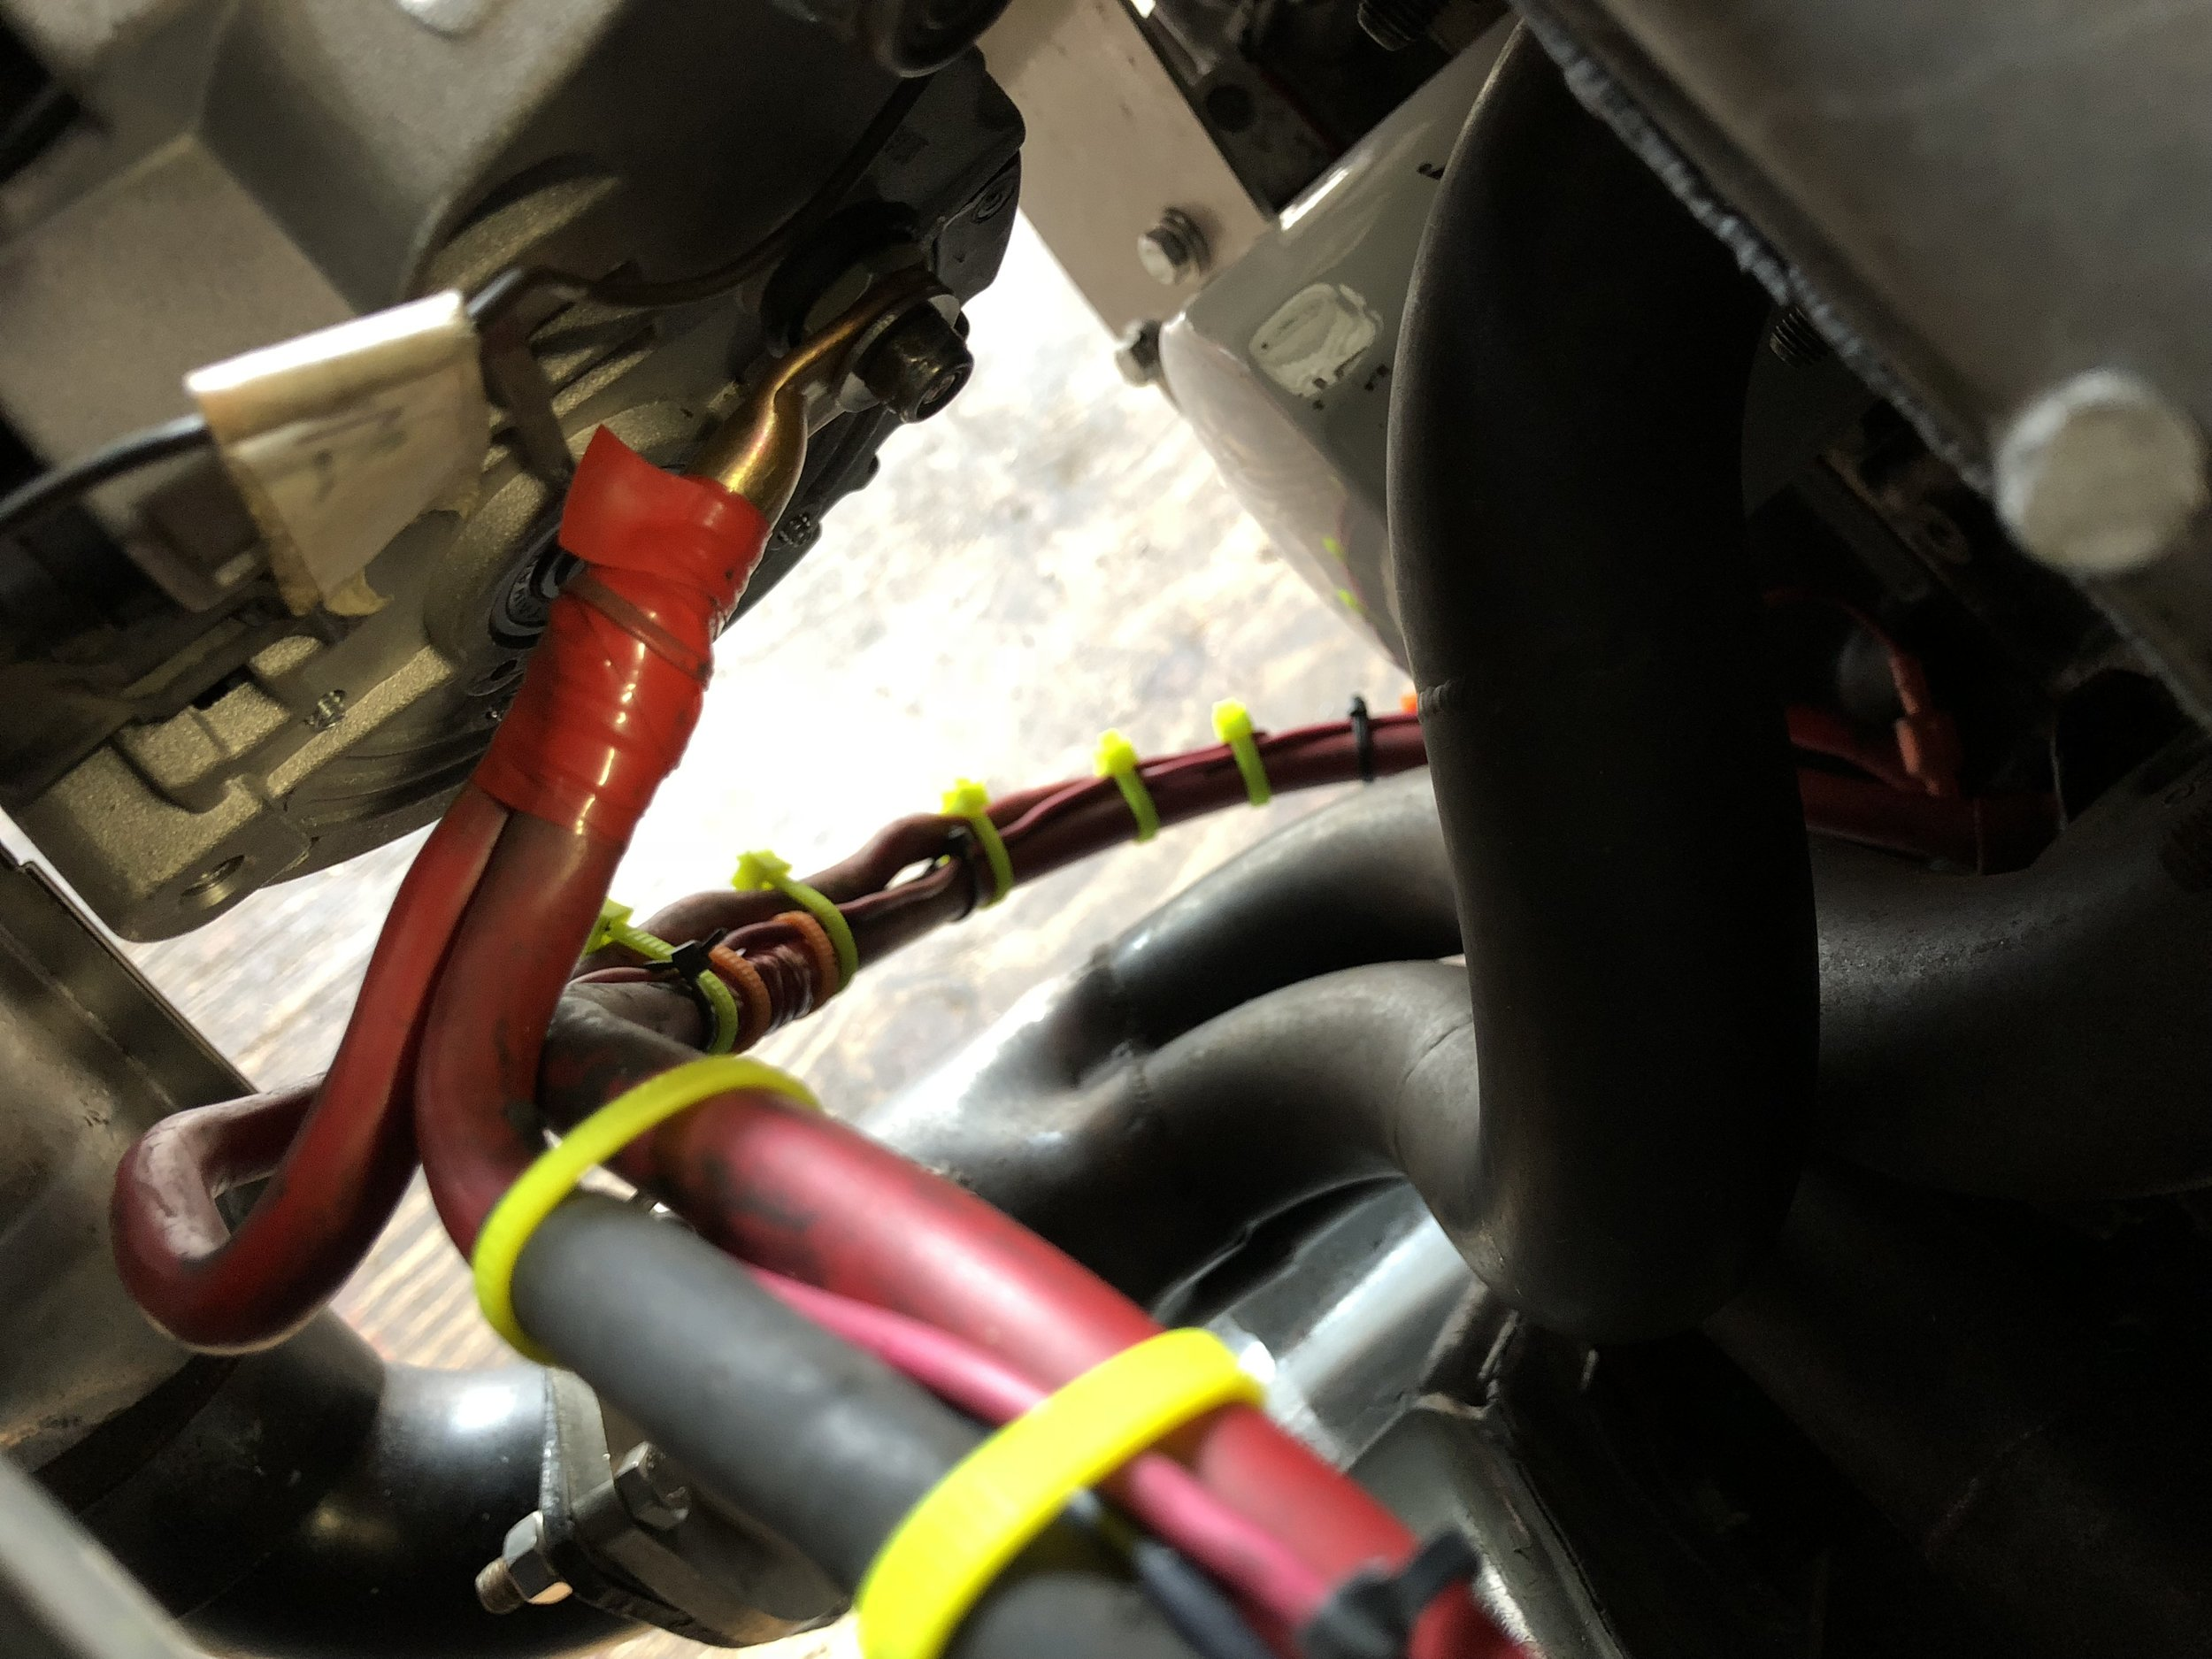 The modified battery cables jointed with a single connector on the alternator.